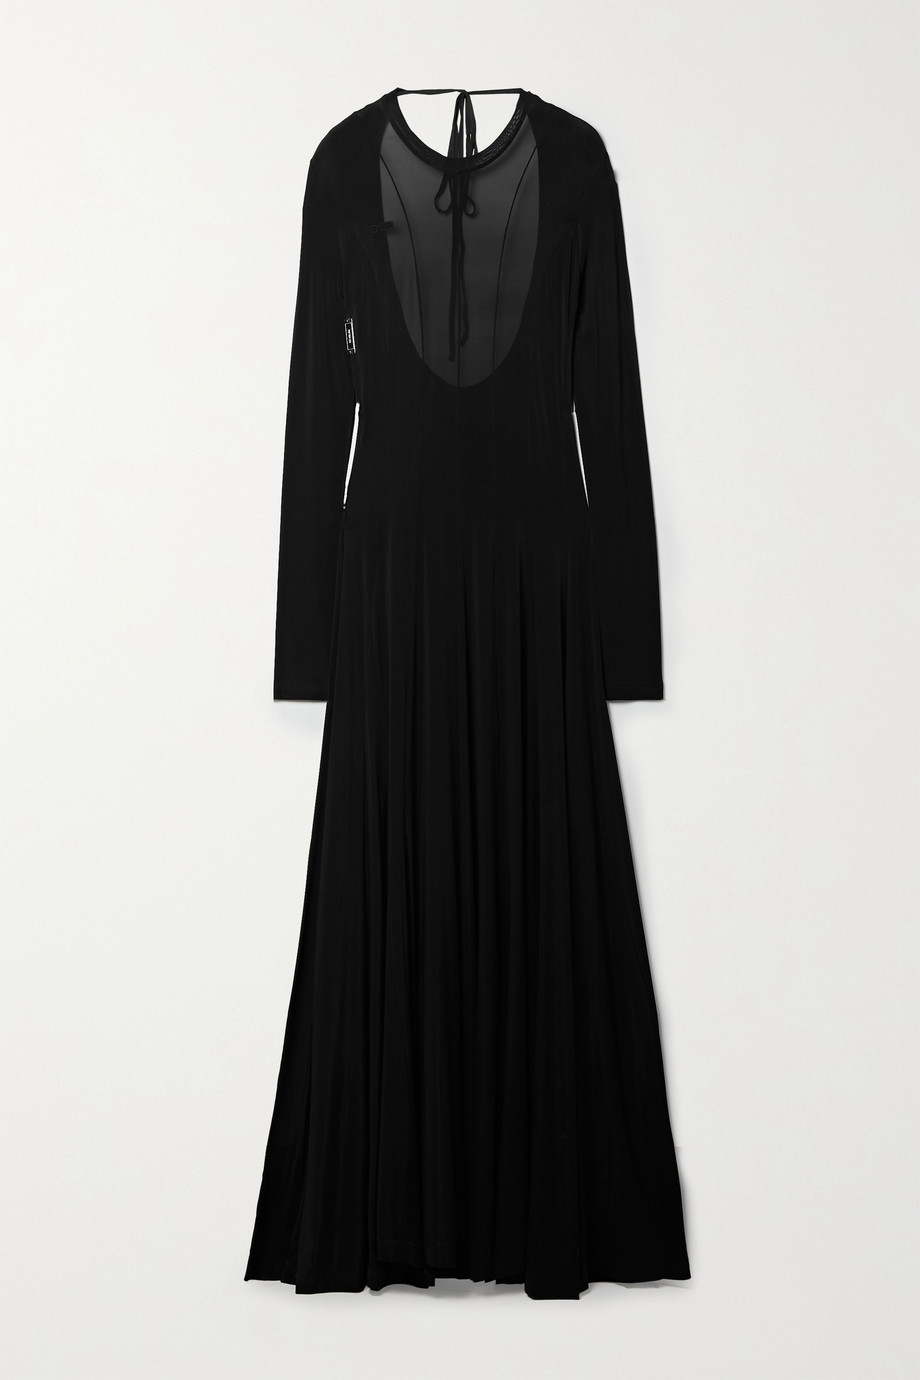 Peter Do Squid open-back paneled stretch-jersey maxi dress